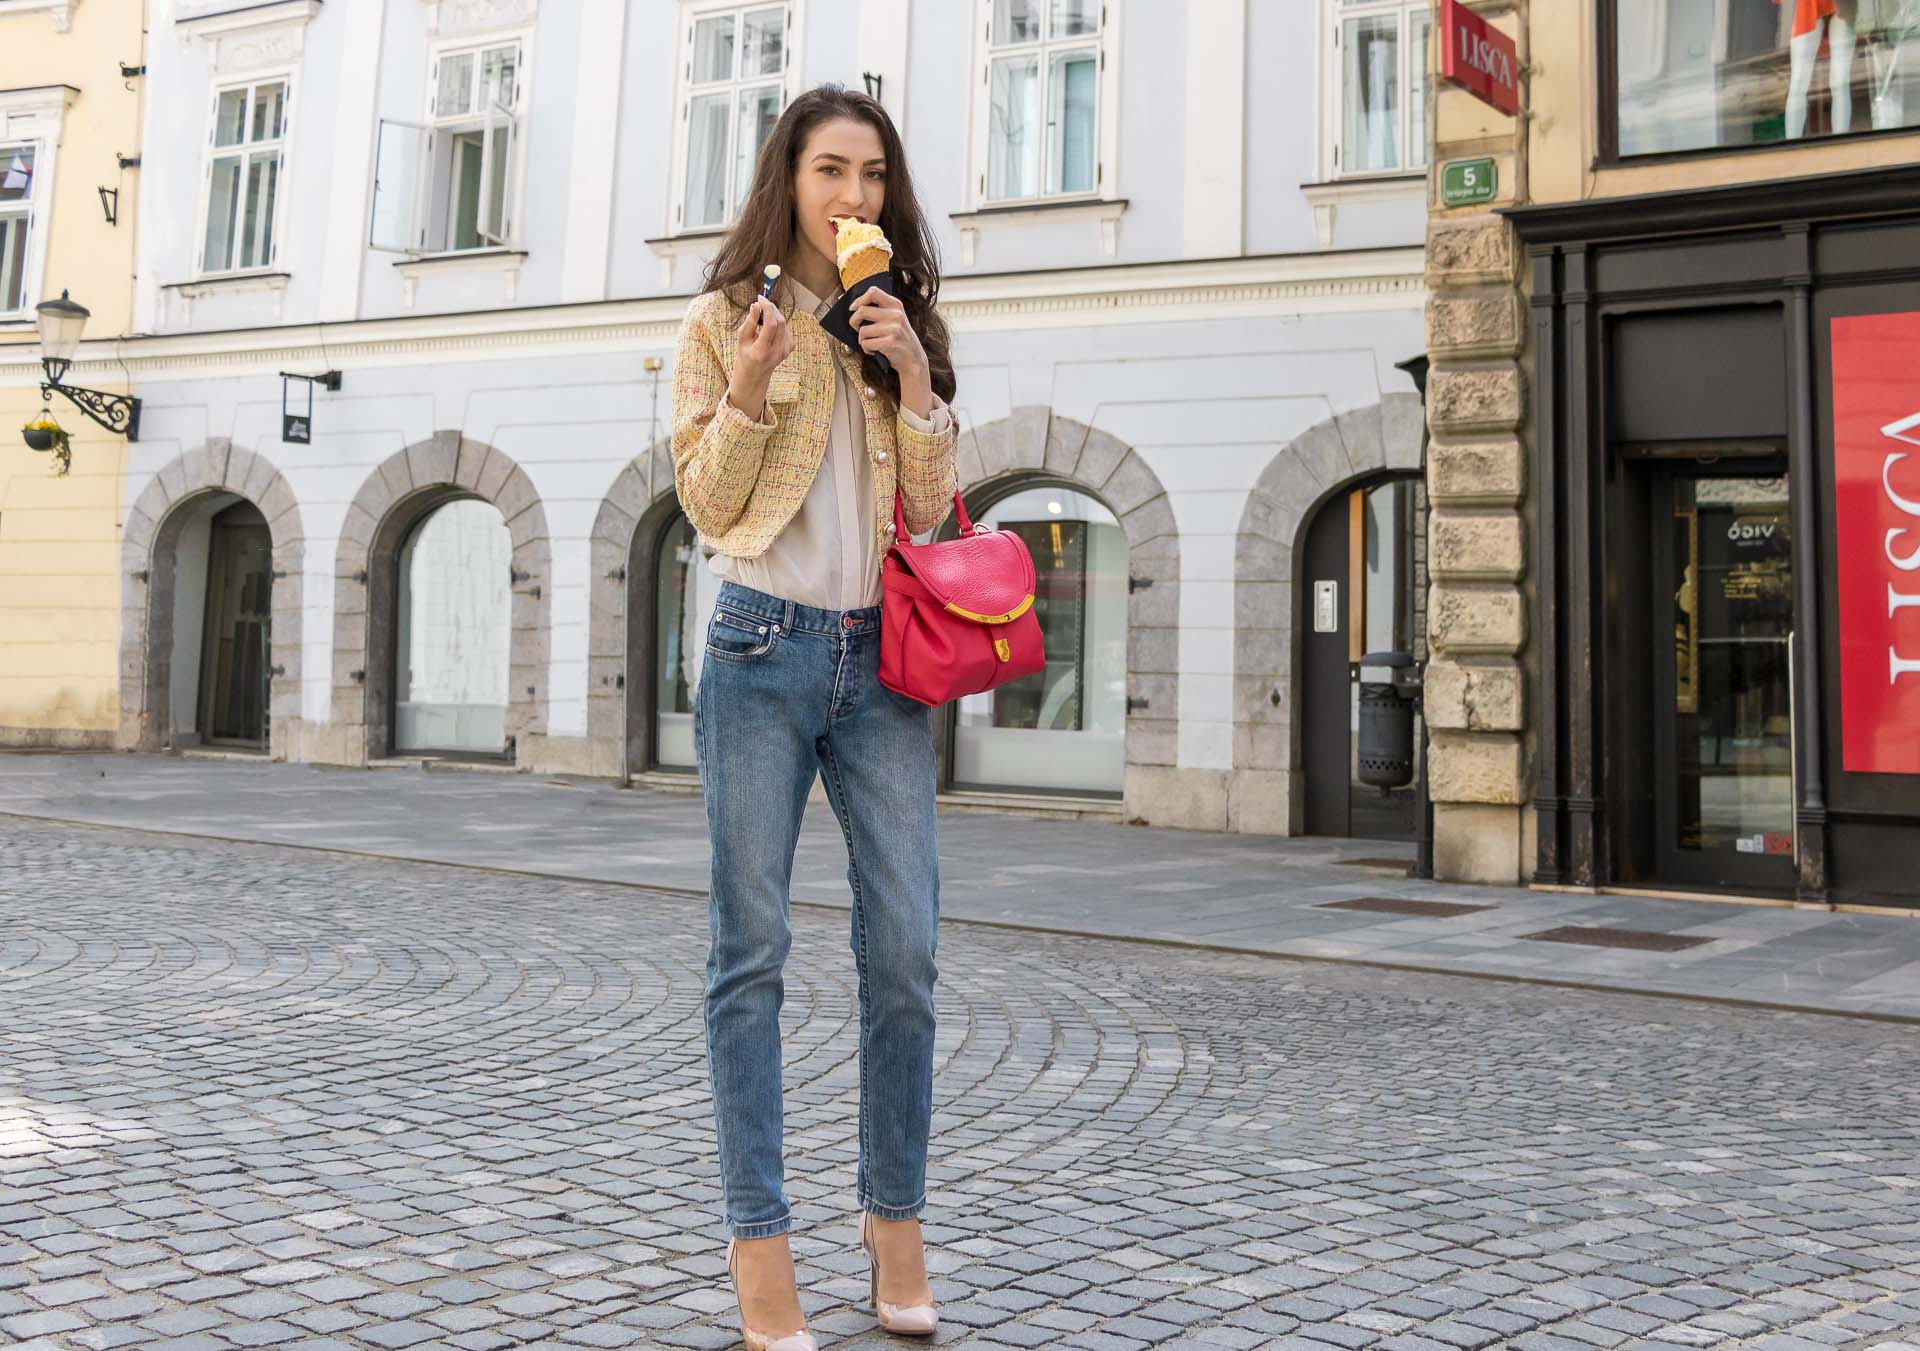 Veronika Lipar Fashion Blogger of Brunette from Wall Street wearing chic casual everyday spring outfit, the yellow tweed jacket from Storets, blue jeans from A.P.C., blush Gianvito Rossi plexi pumps, pink top handle bag and organza white shirt on the street licking ice cream